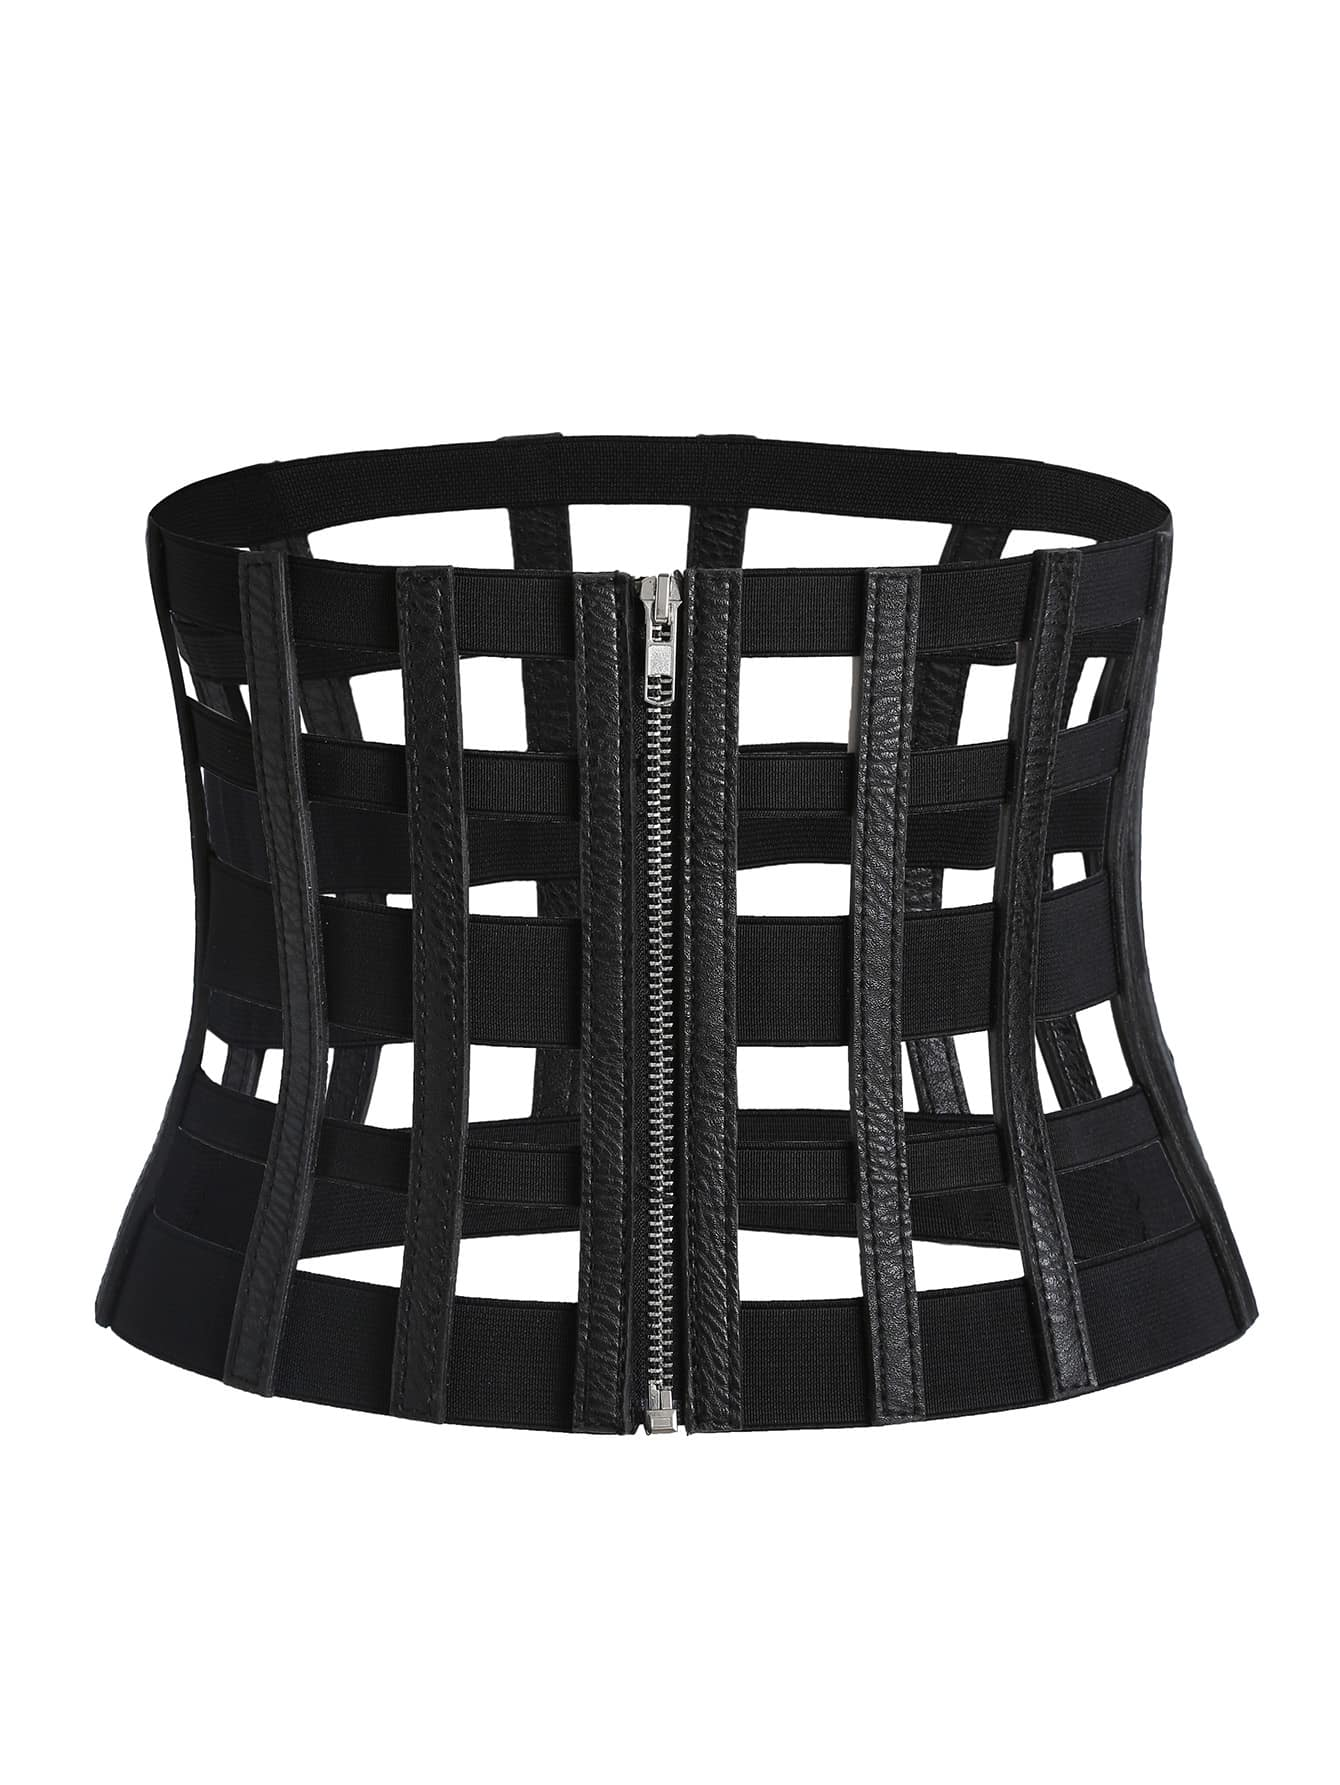 Image of Black Cutout Zipper Corset Belt